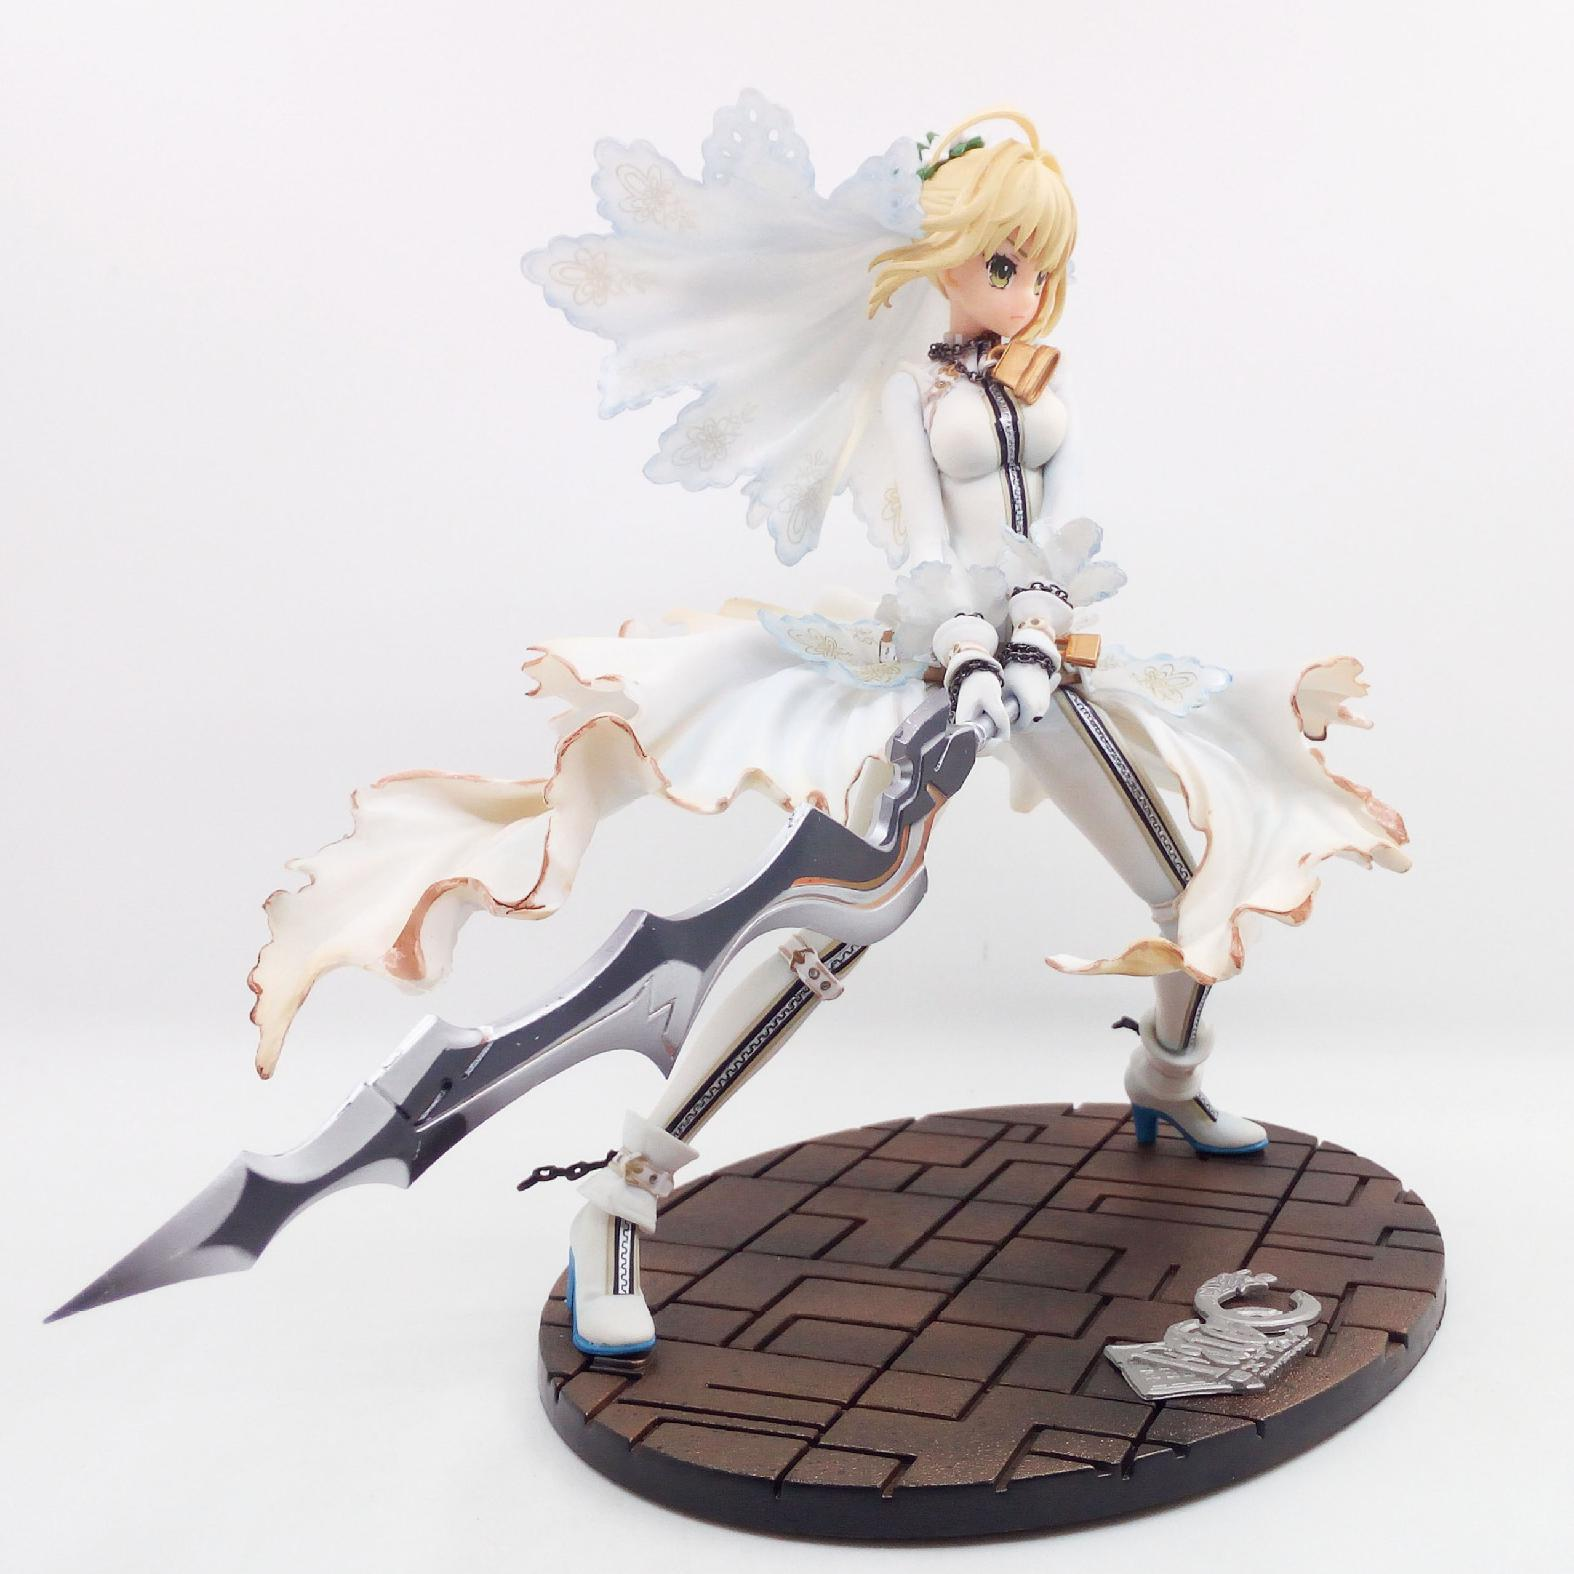 25cm Fate Zero Fate Stay White Wedding Dress Saber Japanese Anime Figures Action Toy Figures Pvc Model Collection Cartoon